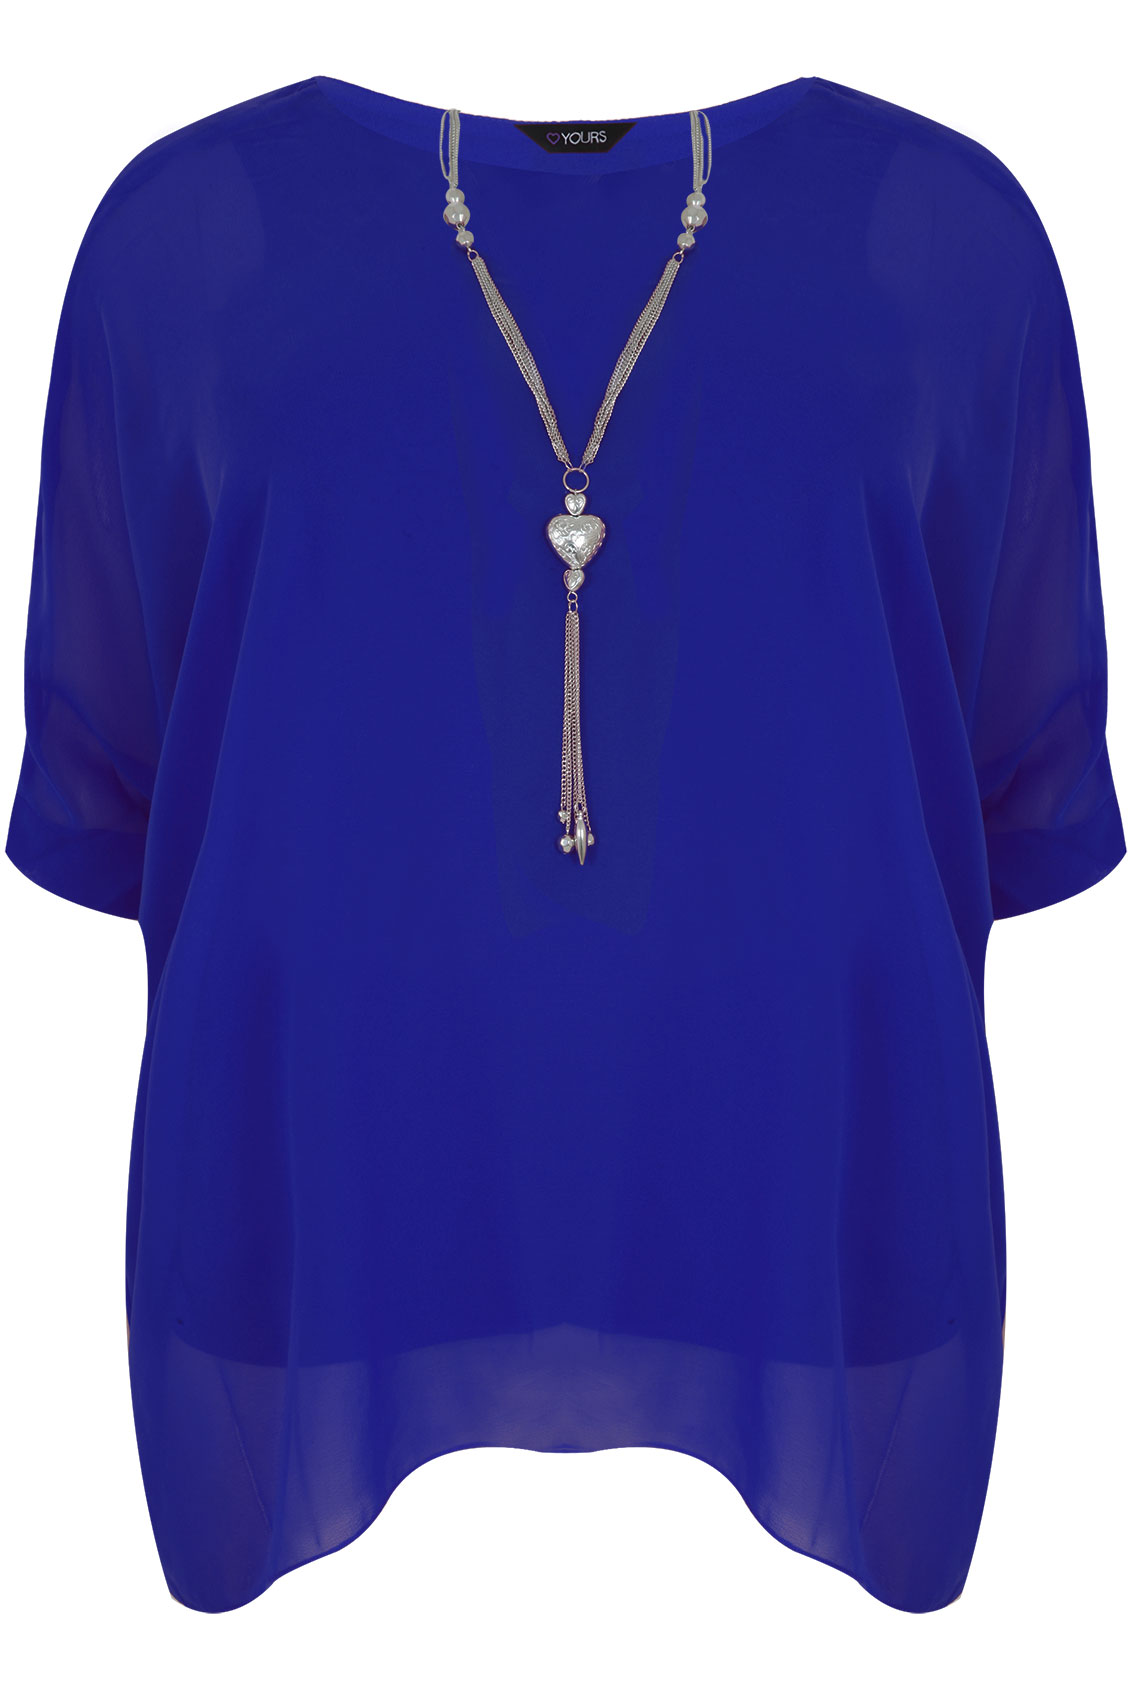 Only US, buy M halloween cold shoulder batwing top blue at online long sleeves shop, yageimer.ga Fashion Pioneer with more than different style of clothes lower than average market price, offering Great customer service and shopping experience.